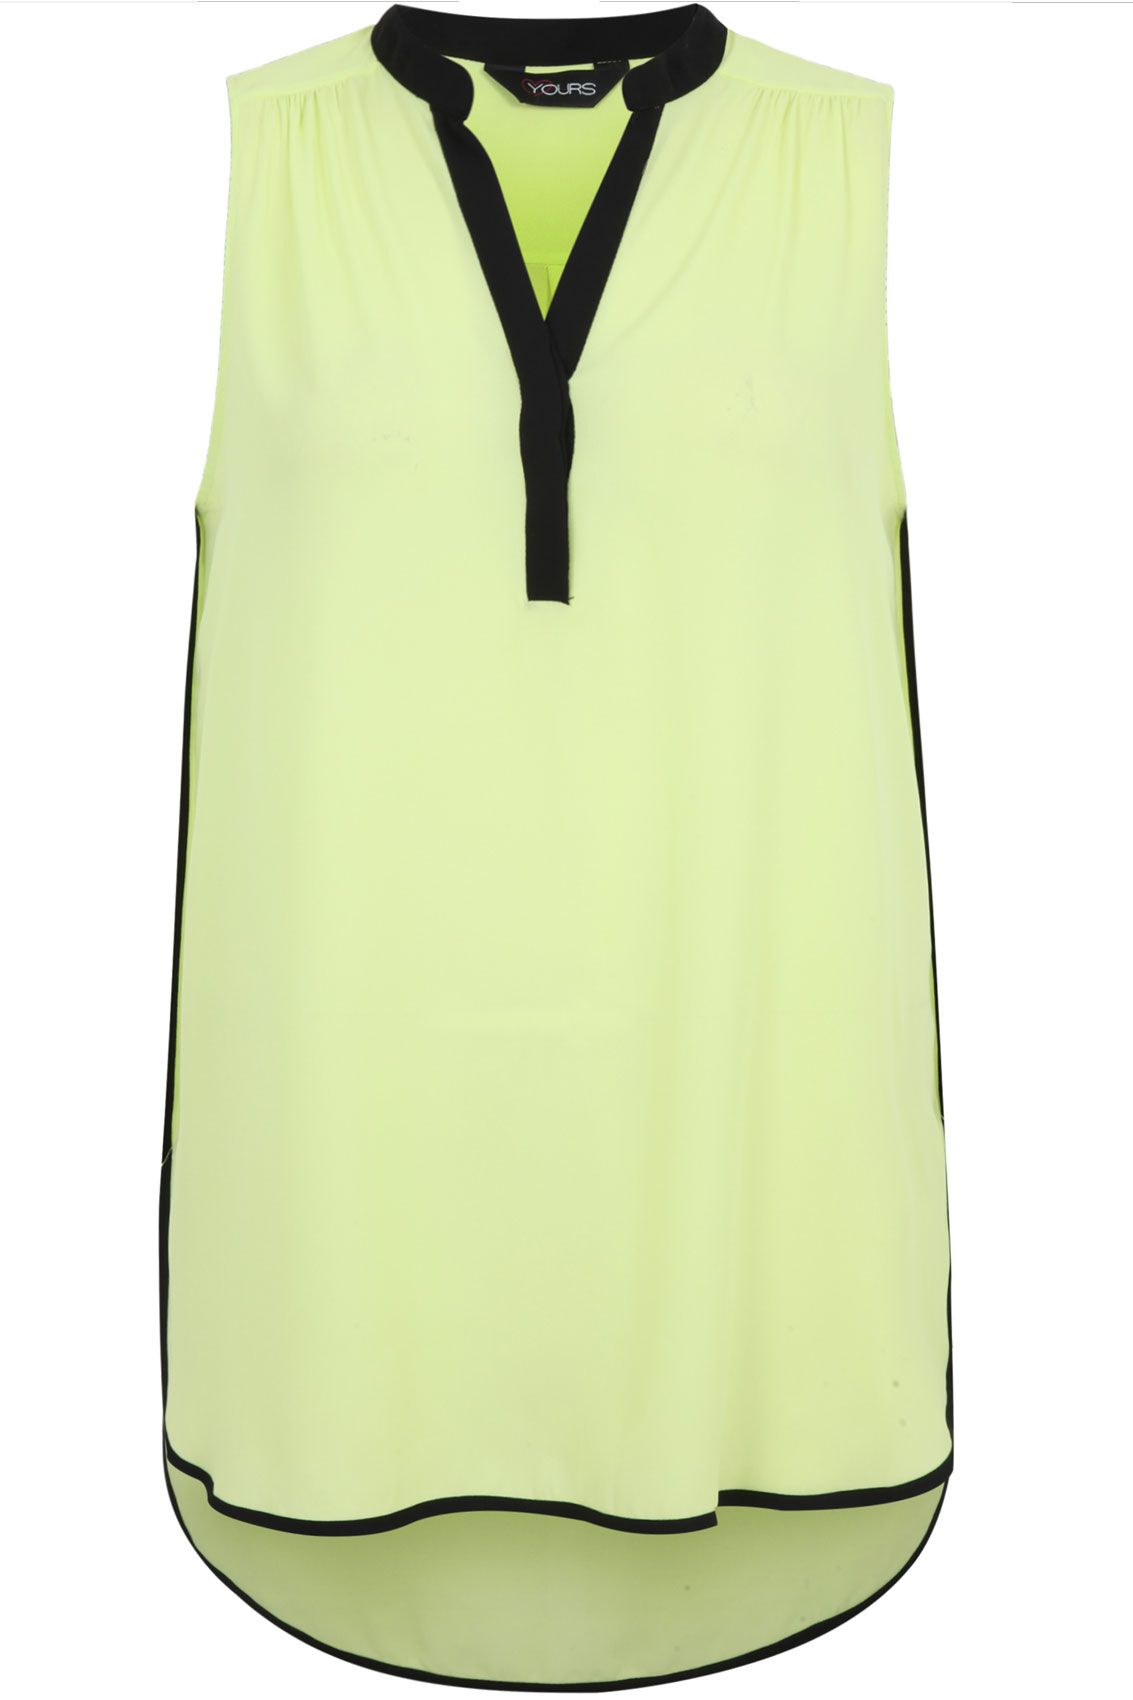 Black and lime contrast trim sleeveless blouse creative career